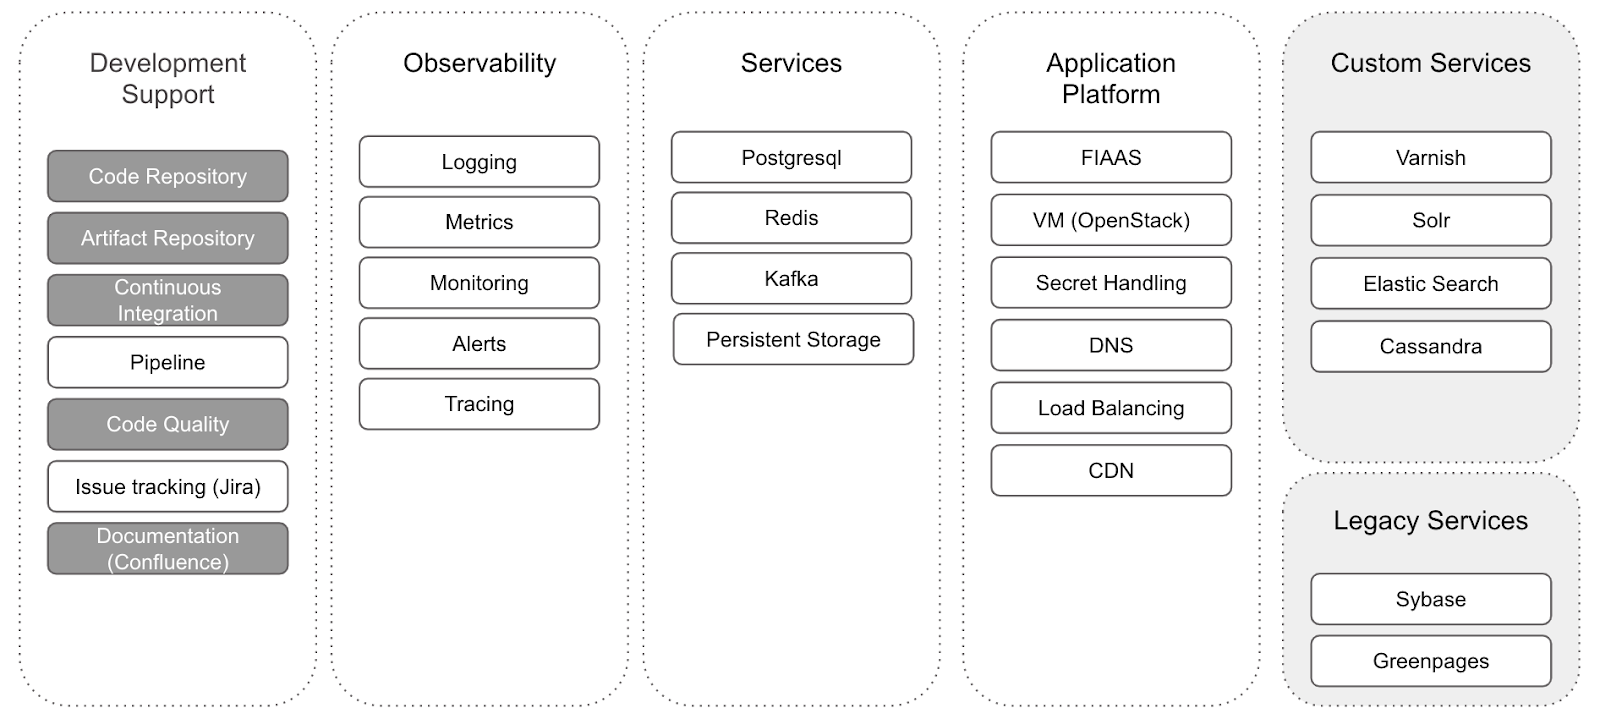 Infrastructure services at FINN: Development support, Observability, Basic services, Application plattform and Custom service